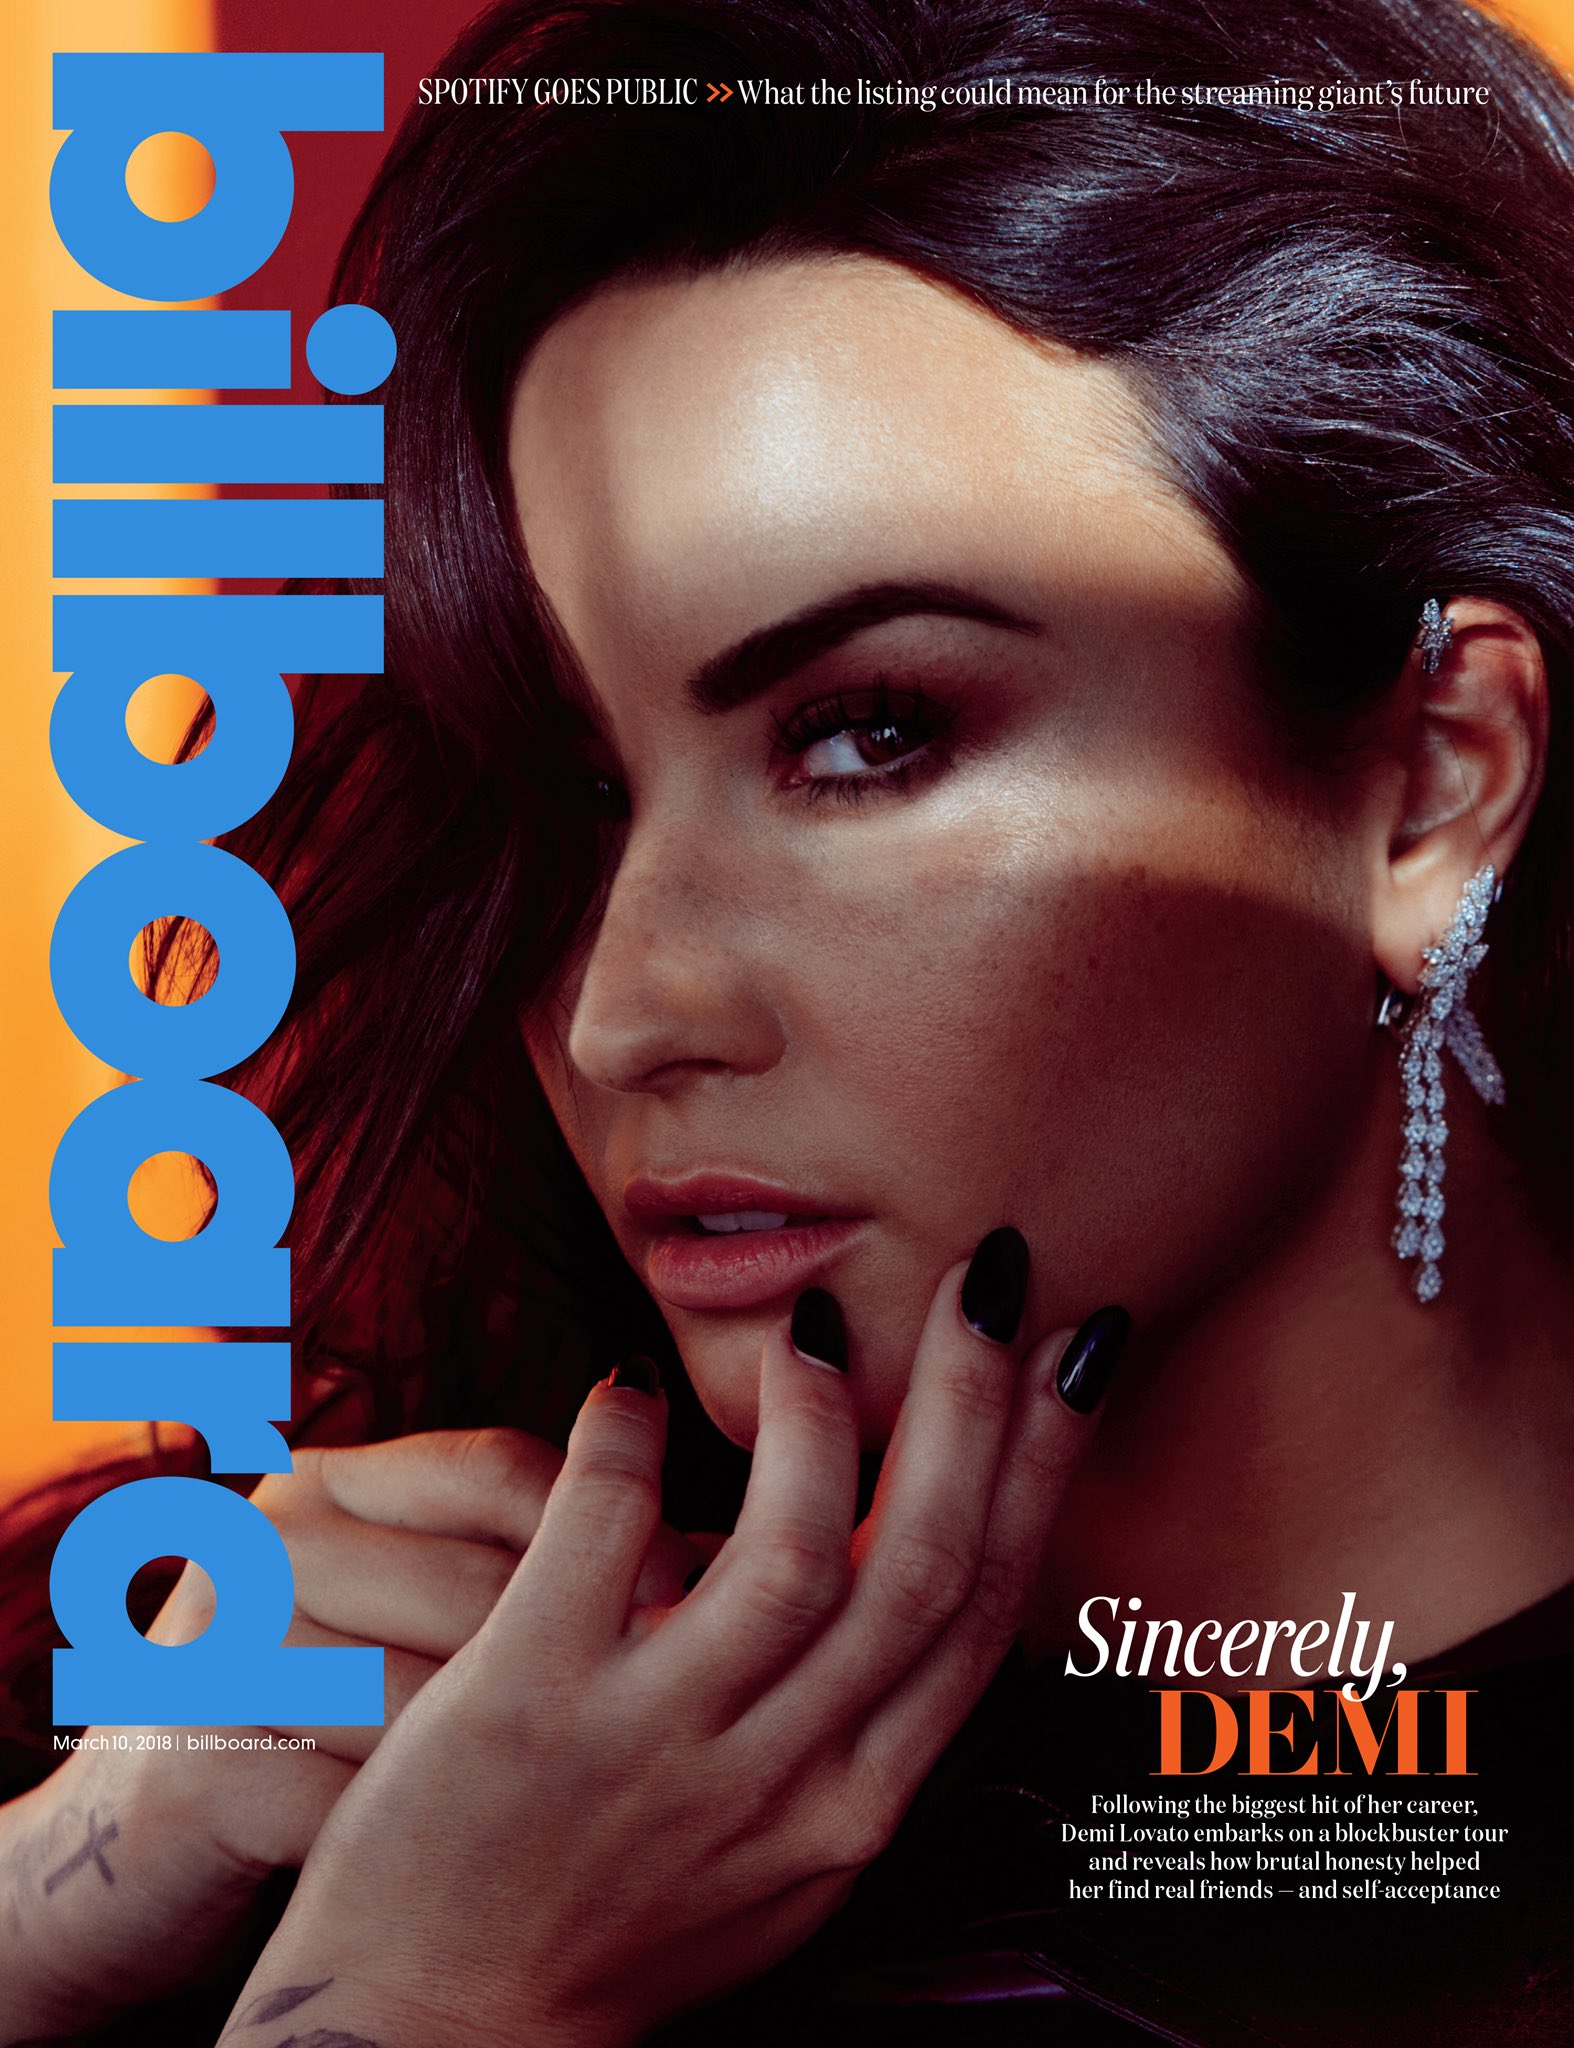 Thank you @billboard for this incredible cover ���� https://t.co/SuNyvTP3w0 https://t.co/ok9I3enUgU